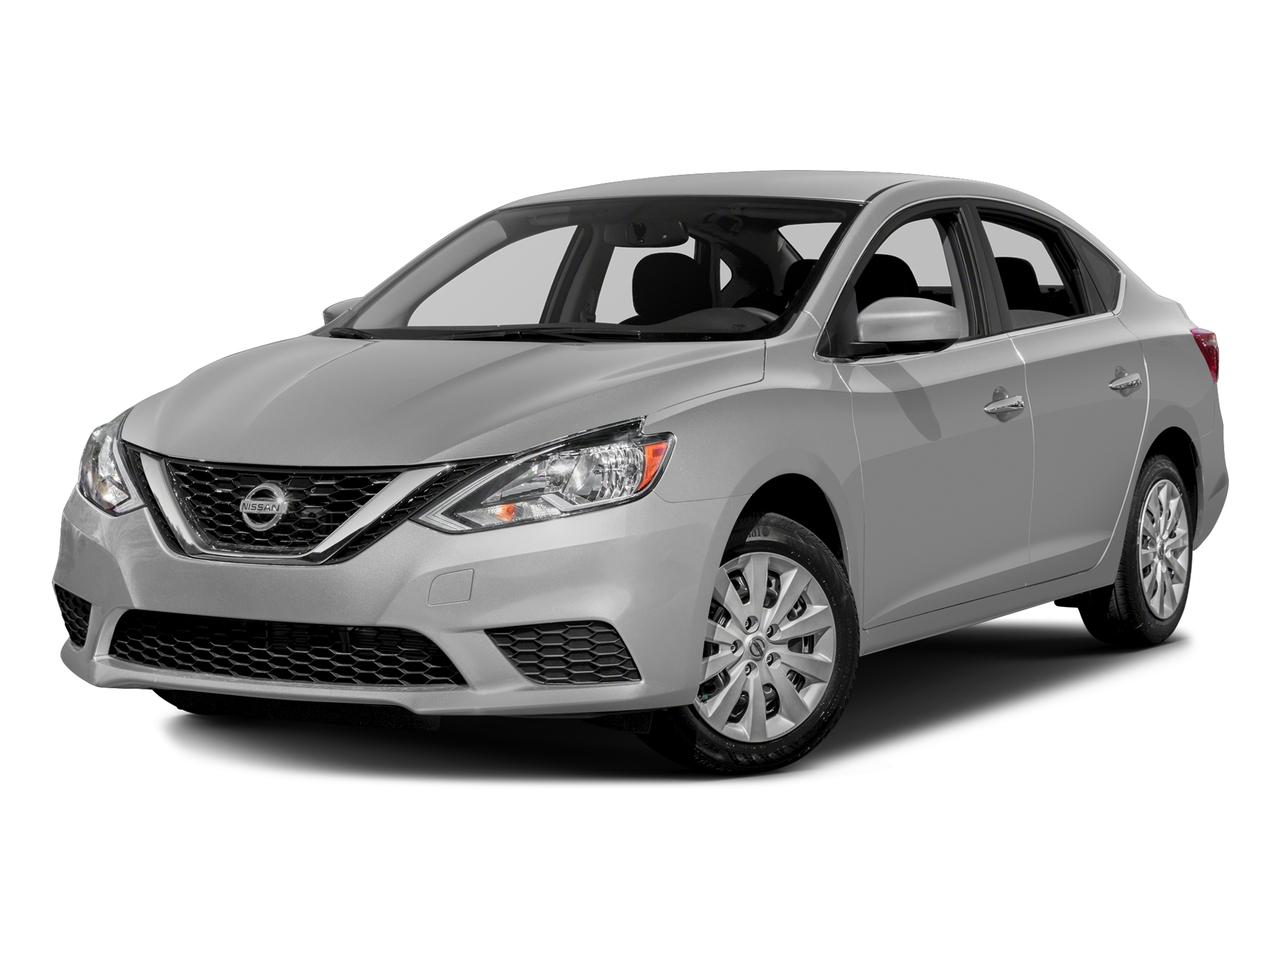 2016 Nissan Sentra Vehicle Photo in San Antonio, TX 78257